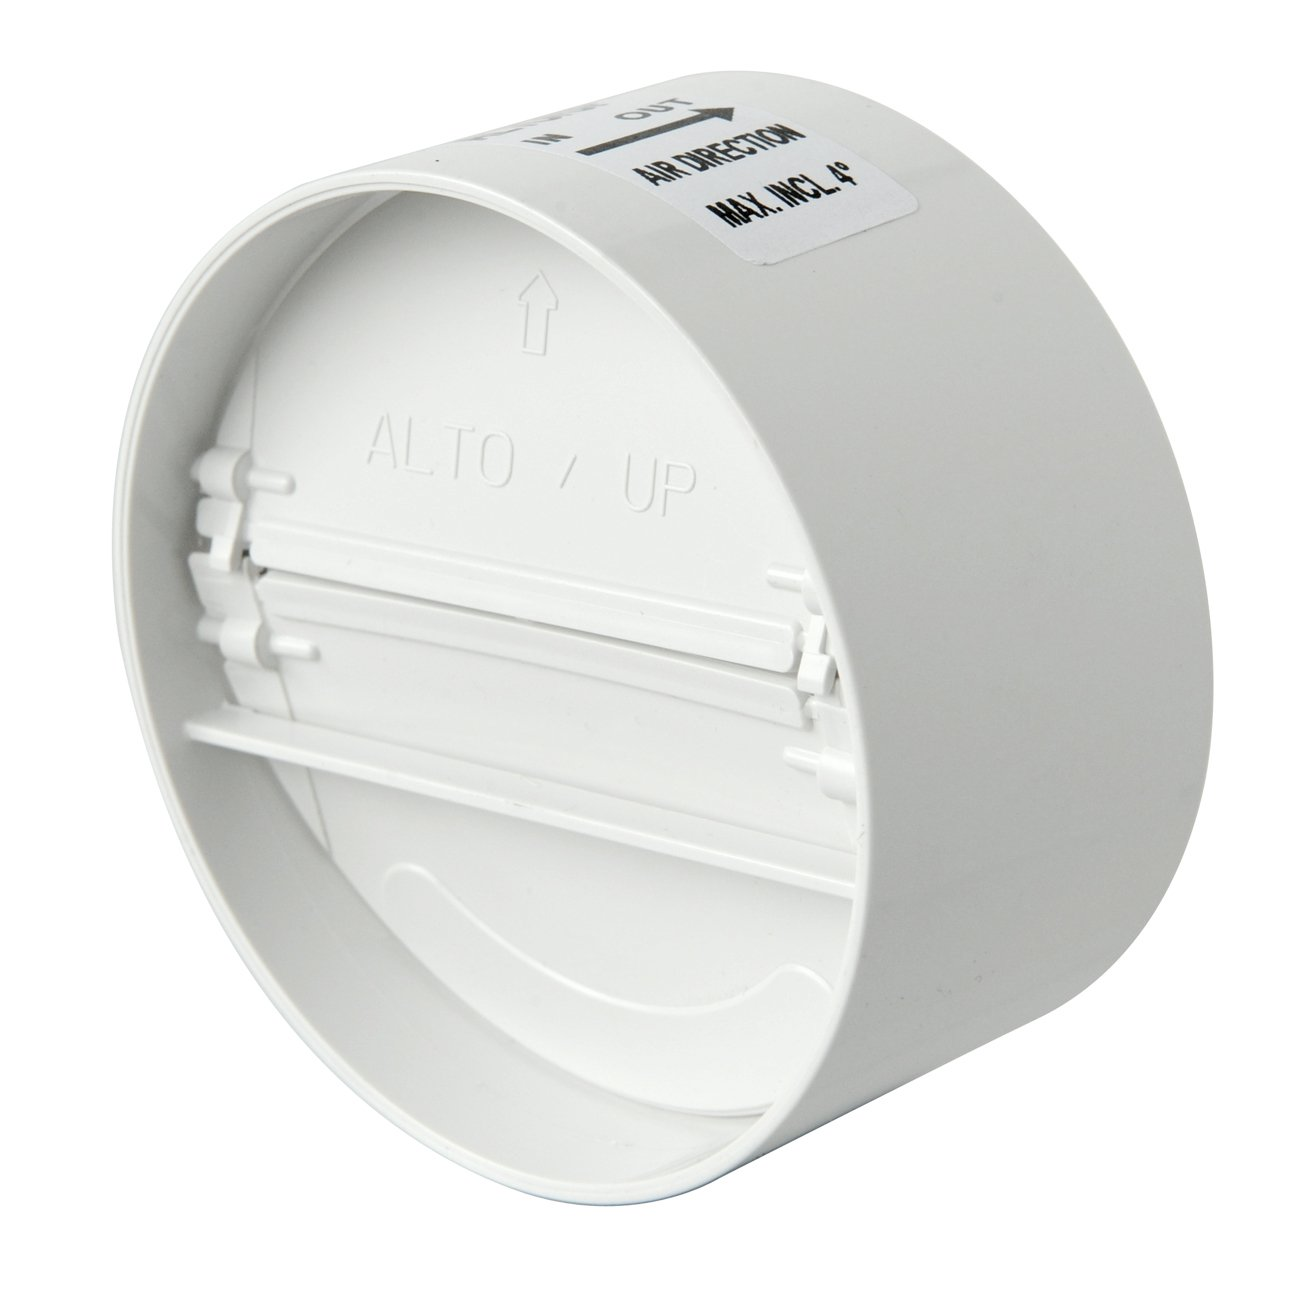 The Ventilation vlg100b-y vlg100b Butterfly of No Return Air In ABS with compensatory Gasket, Valve for Pipe Diameter 100 - 110 mm White - - Amazon.com